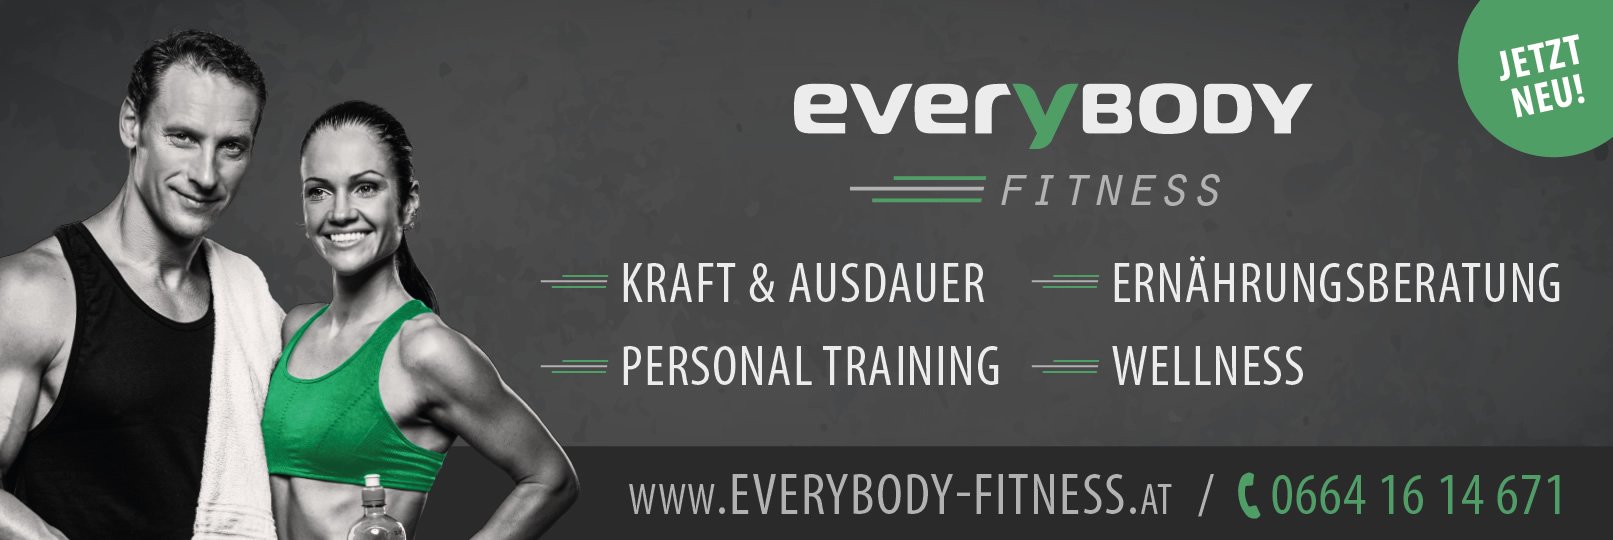 www.everybody-fitness.at